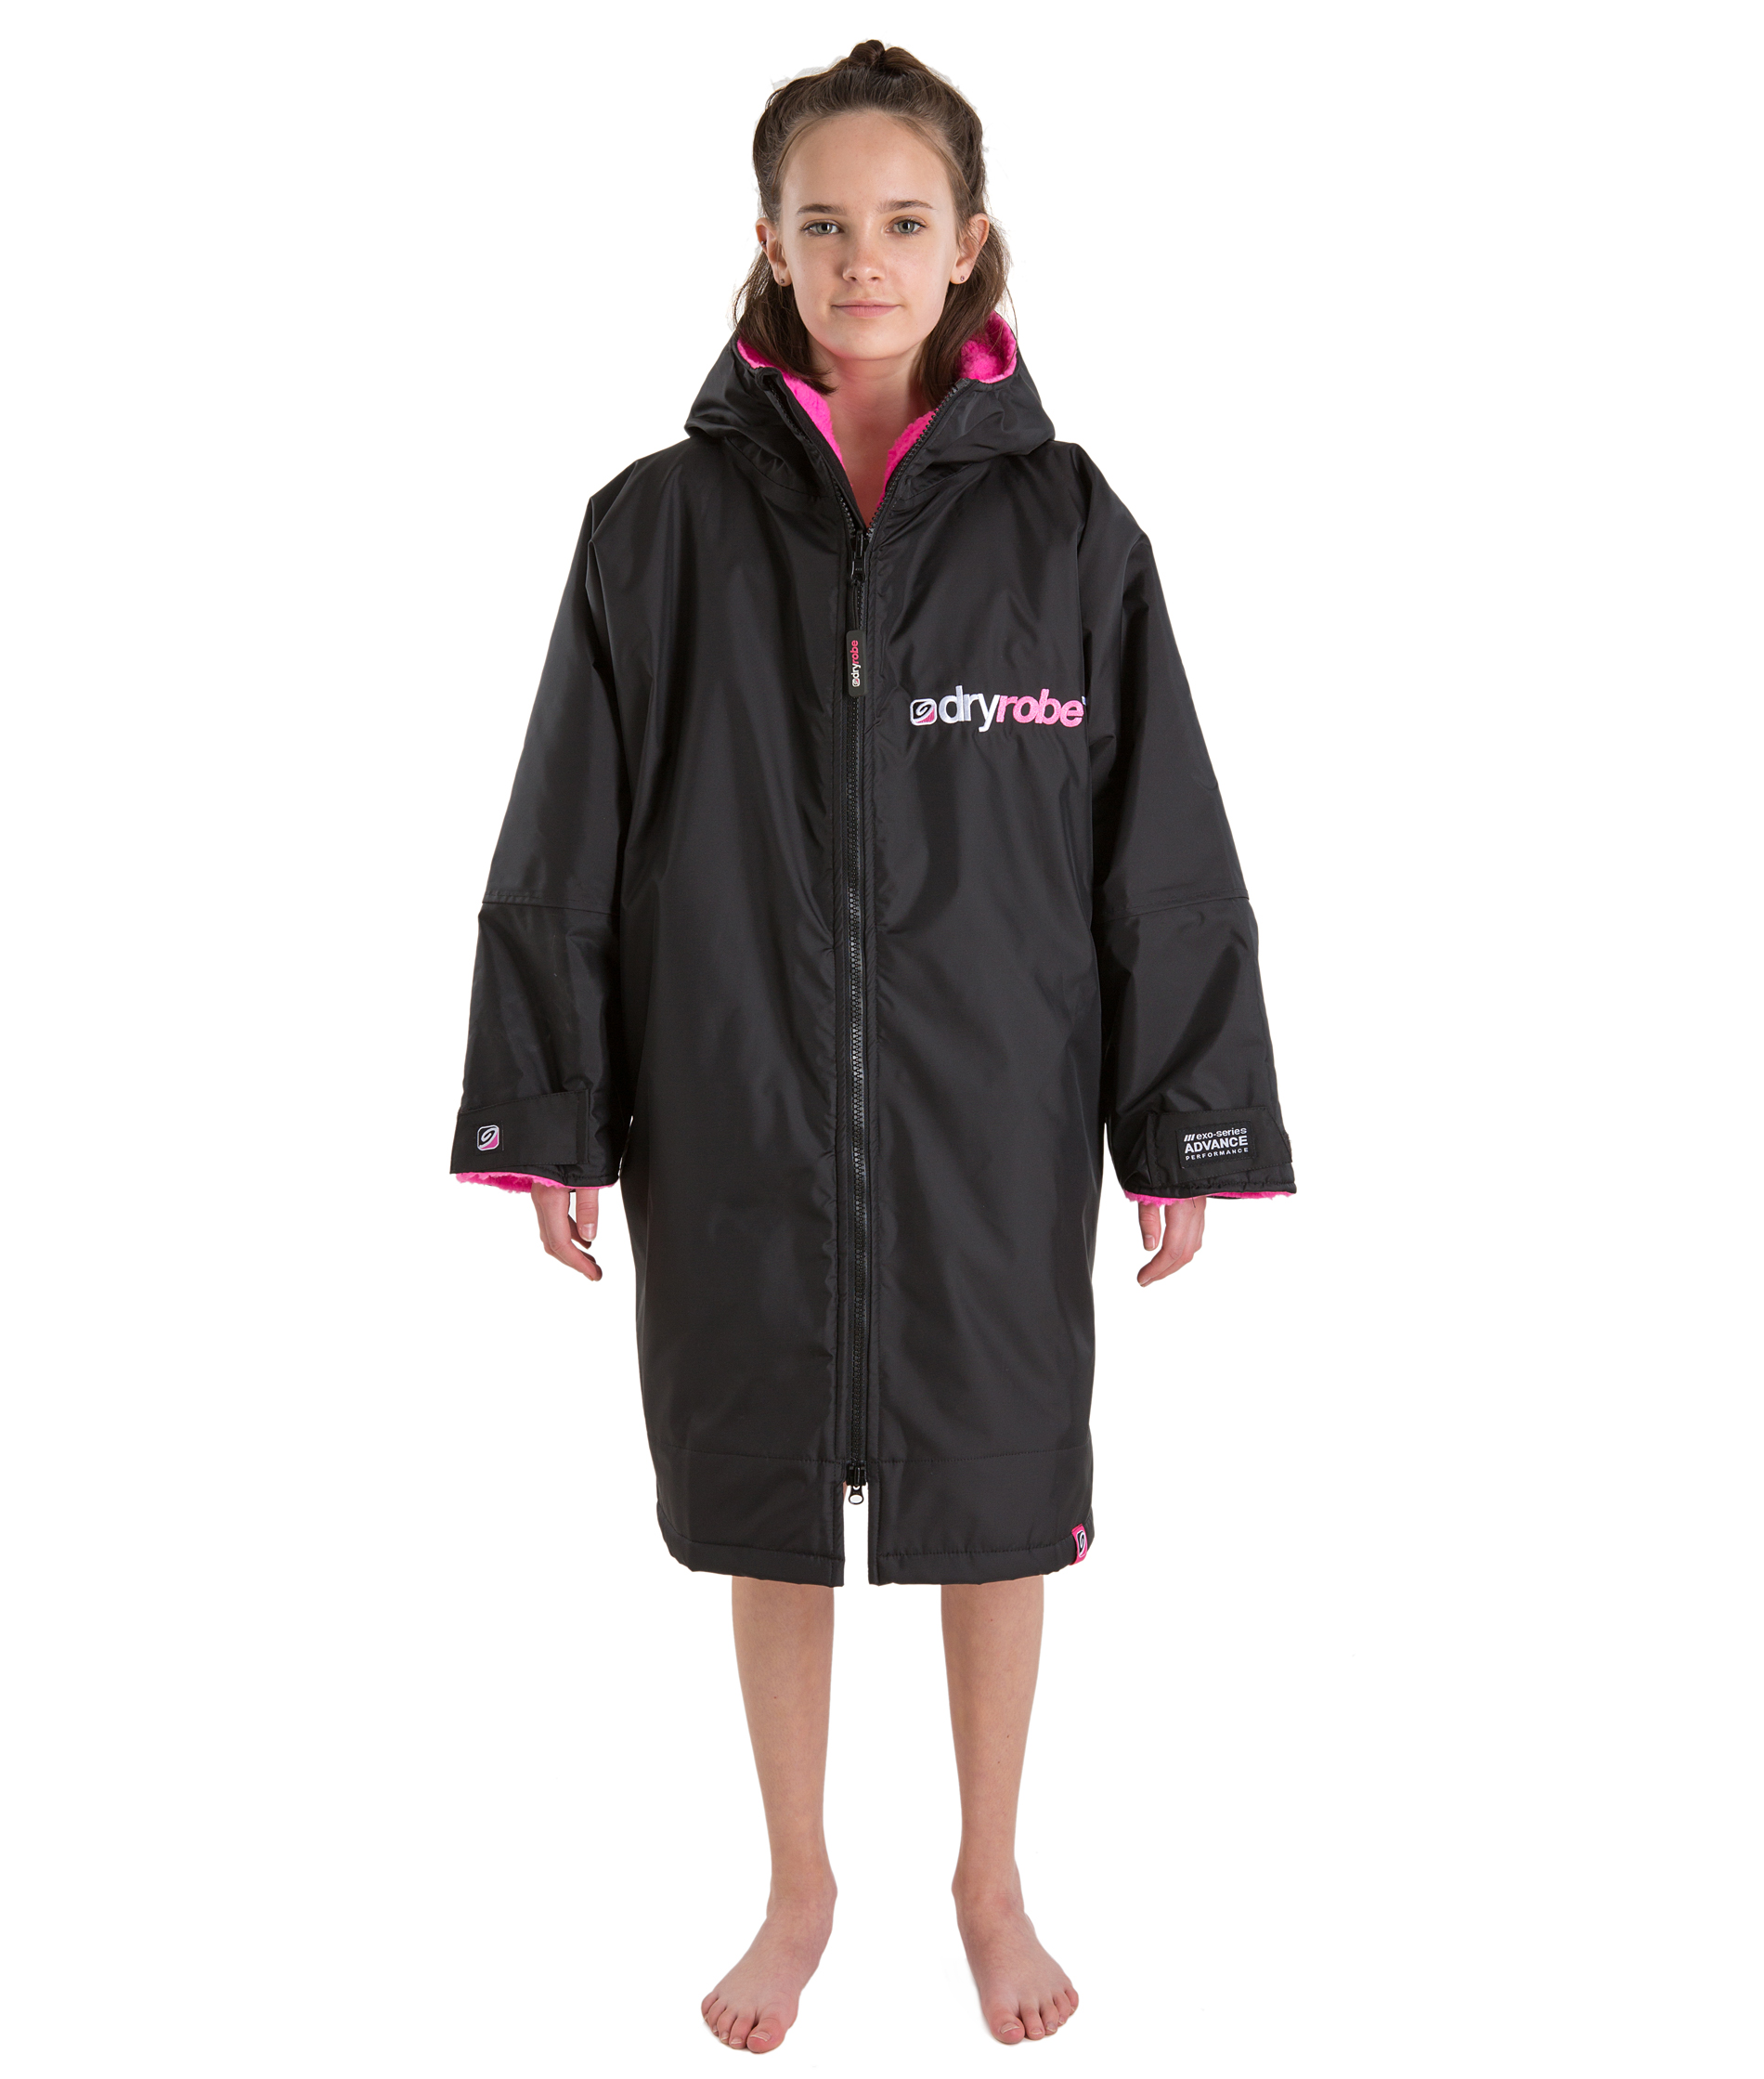 Dryrobe Advance Long Sleeve Black/Pink - Small